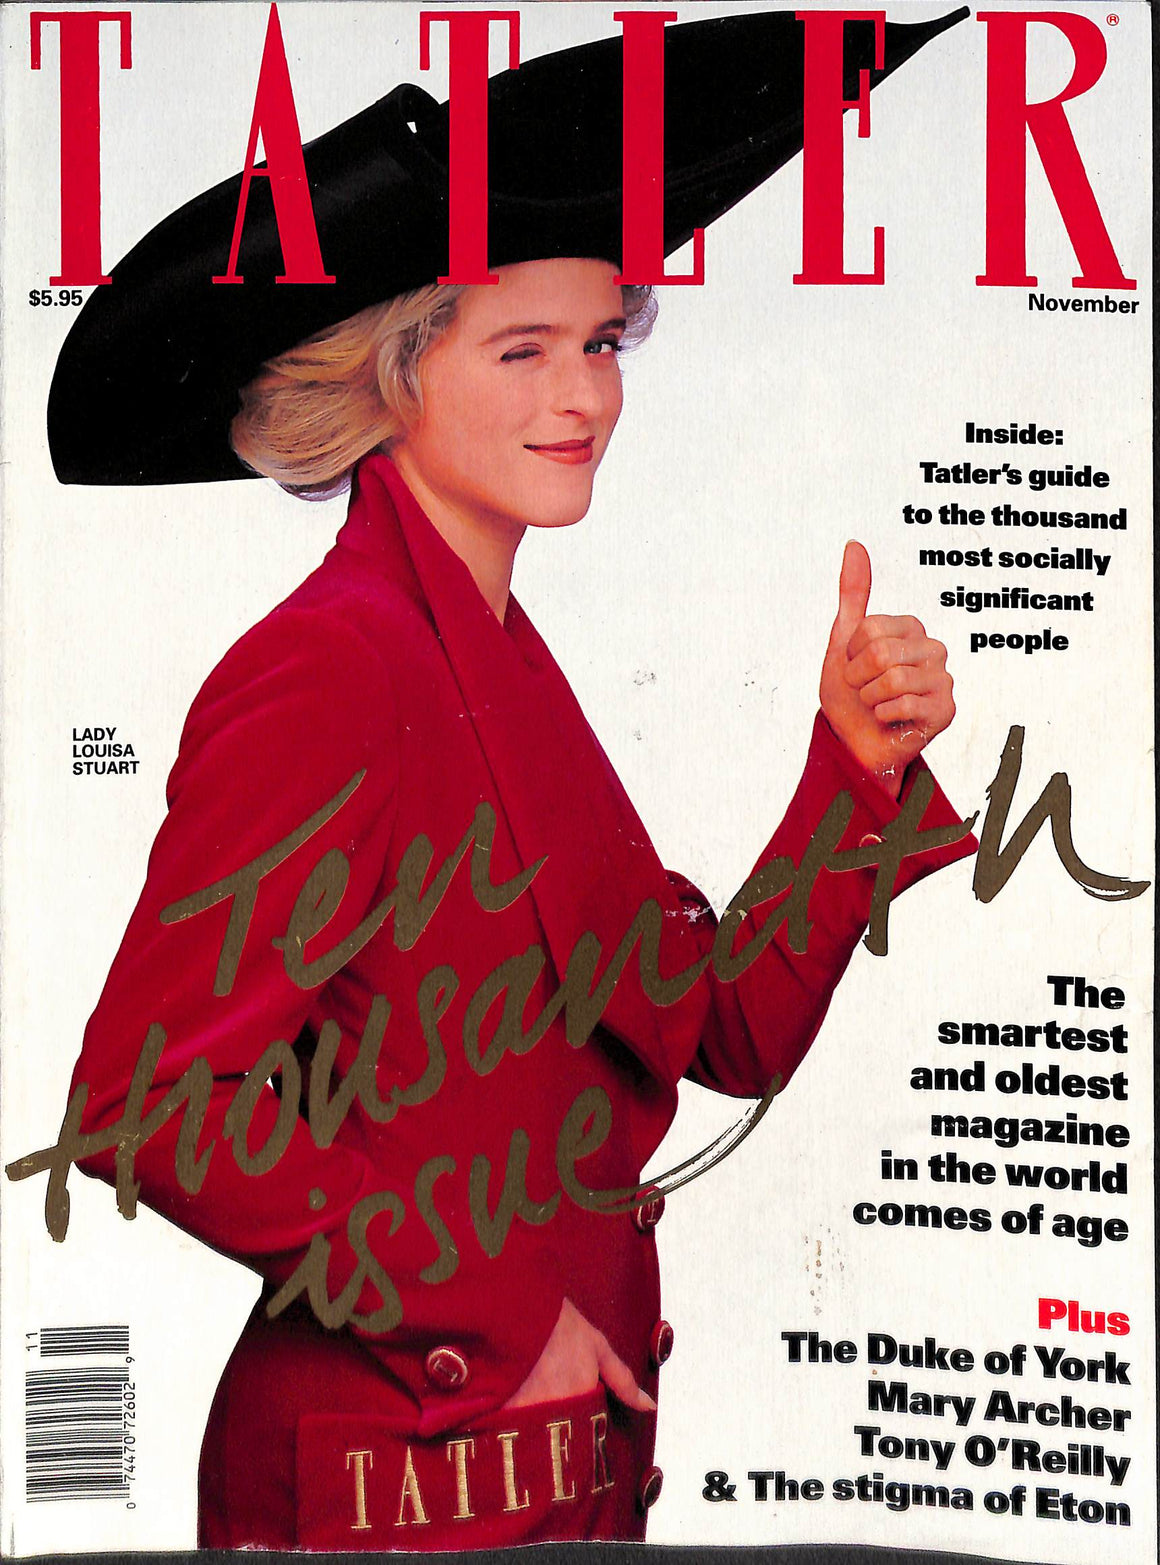 Tatler Volume 287 Number 11 November 1992 (Sold!)